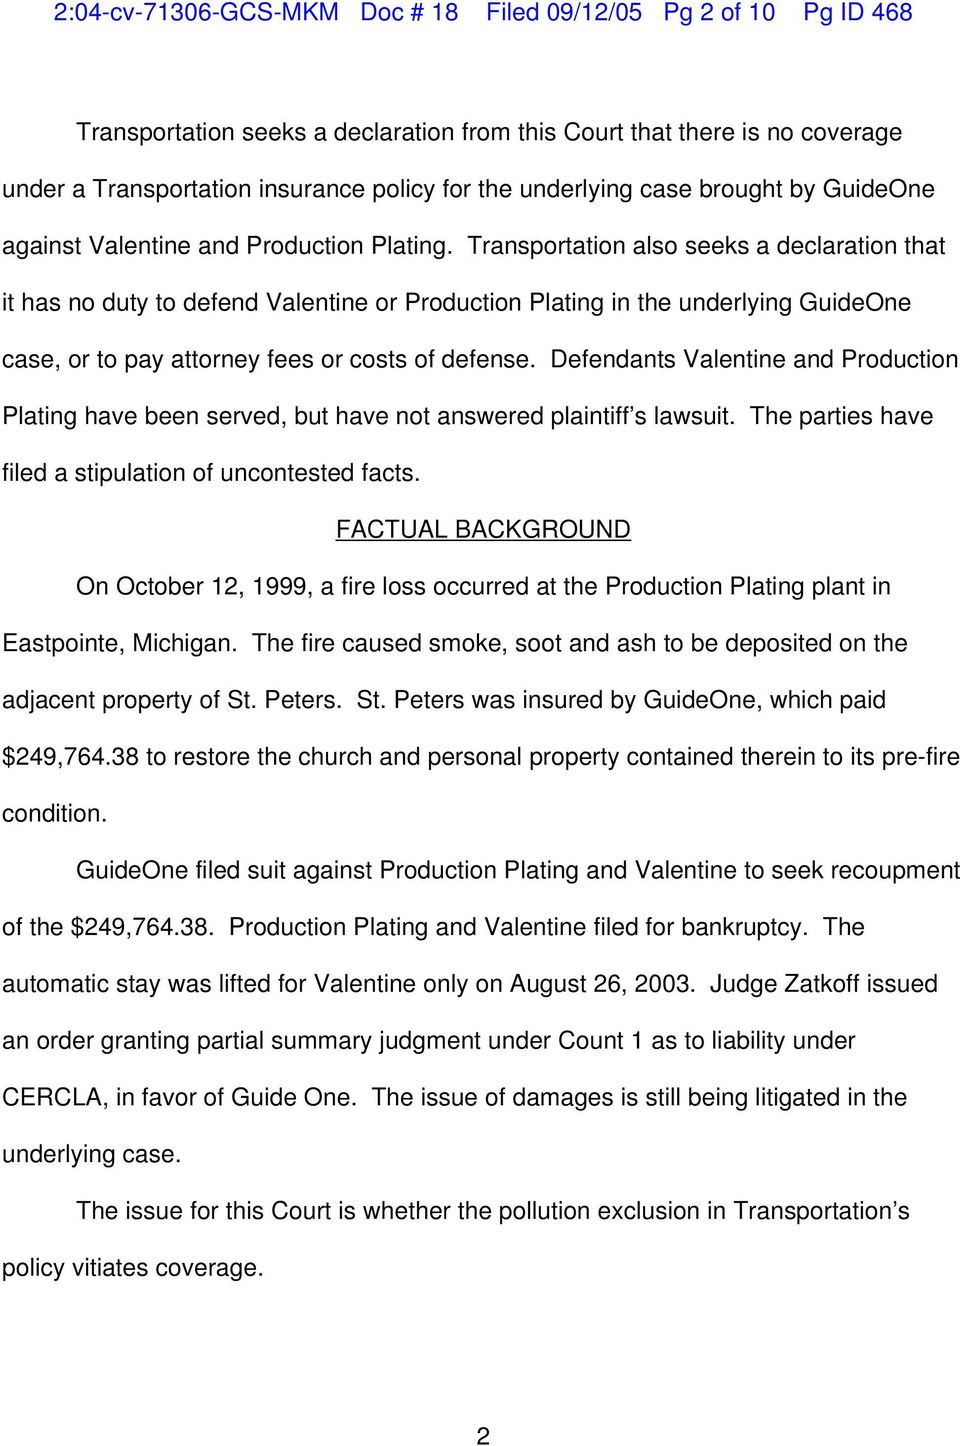 Transportation also seeks a declaration that it has no duty to defend Valentine or Production Plating in the underlying GuideOne case, or to pay attorney fees or costs of defense.